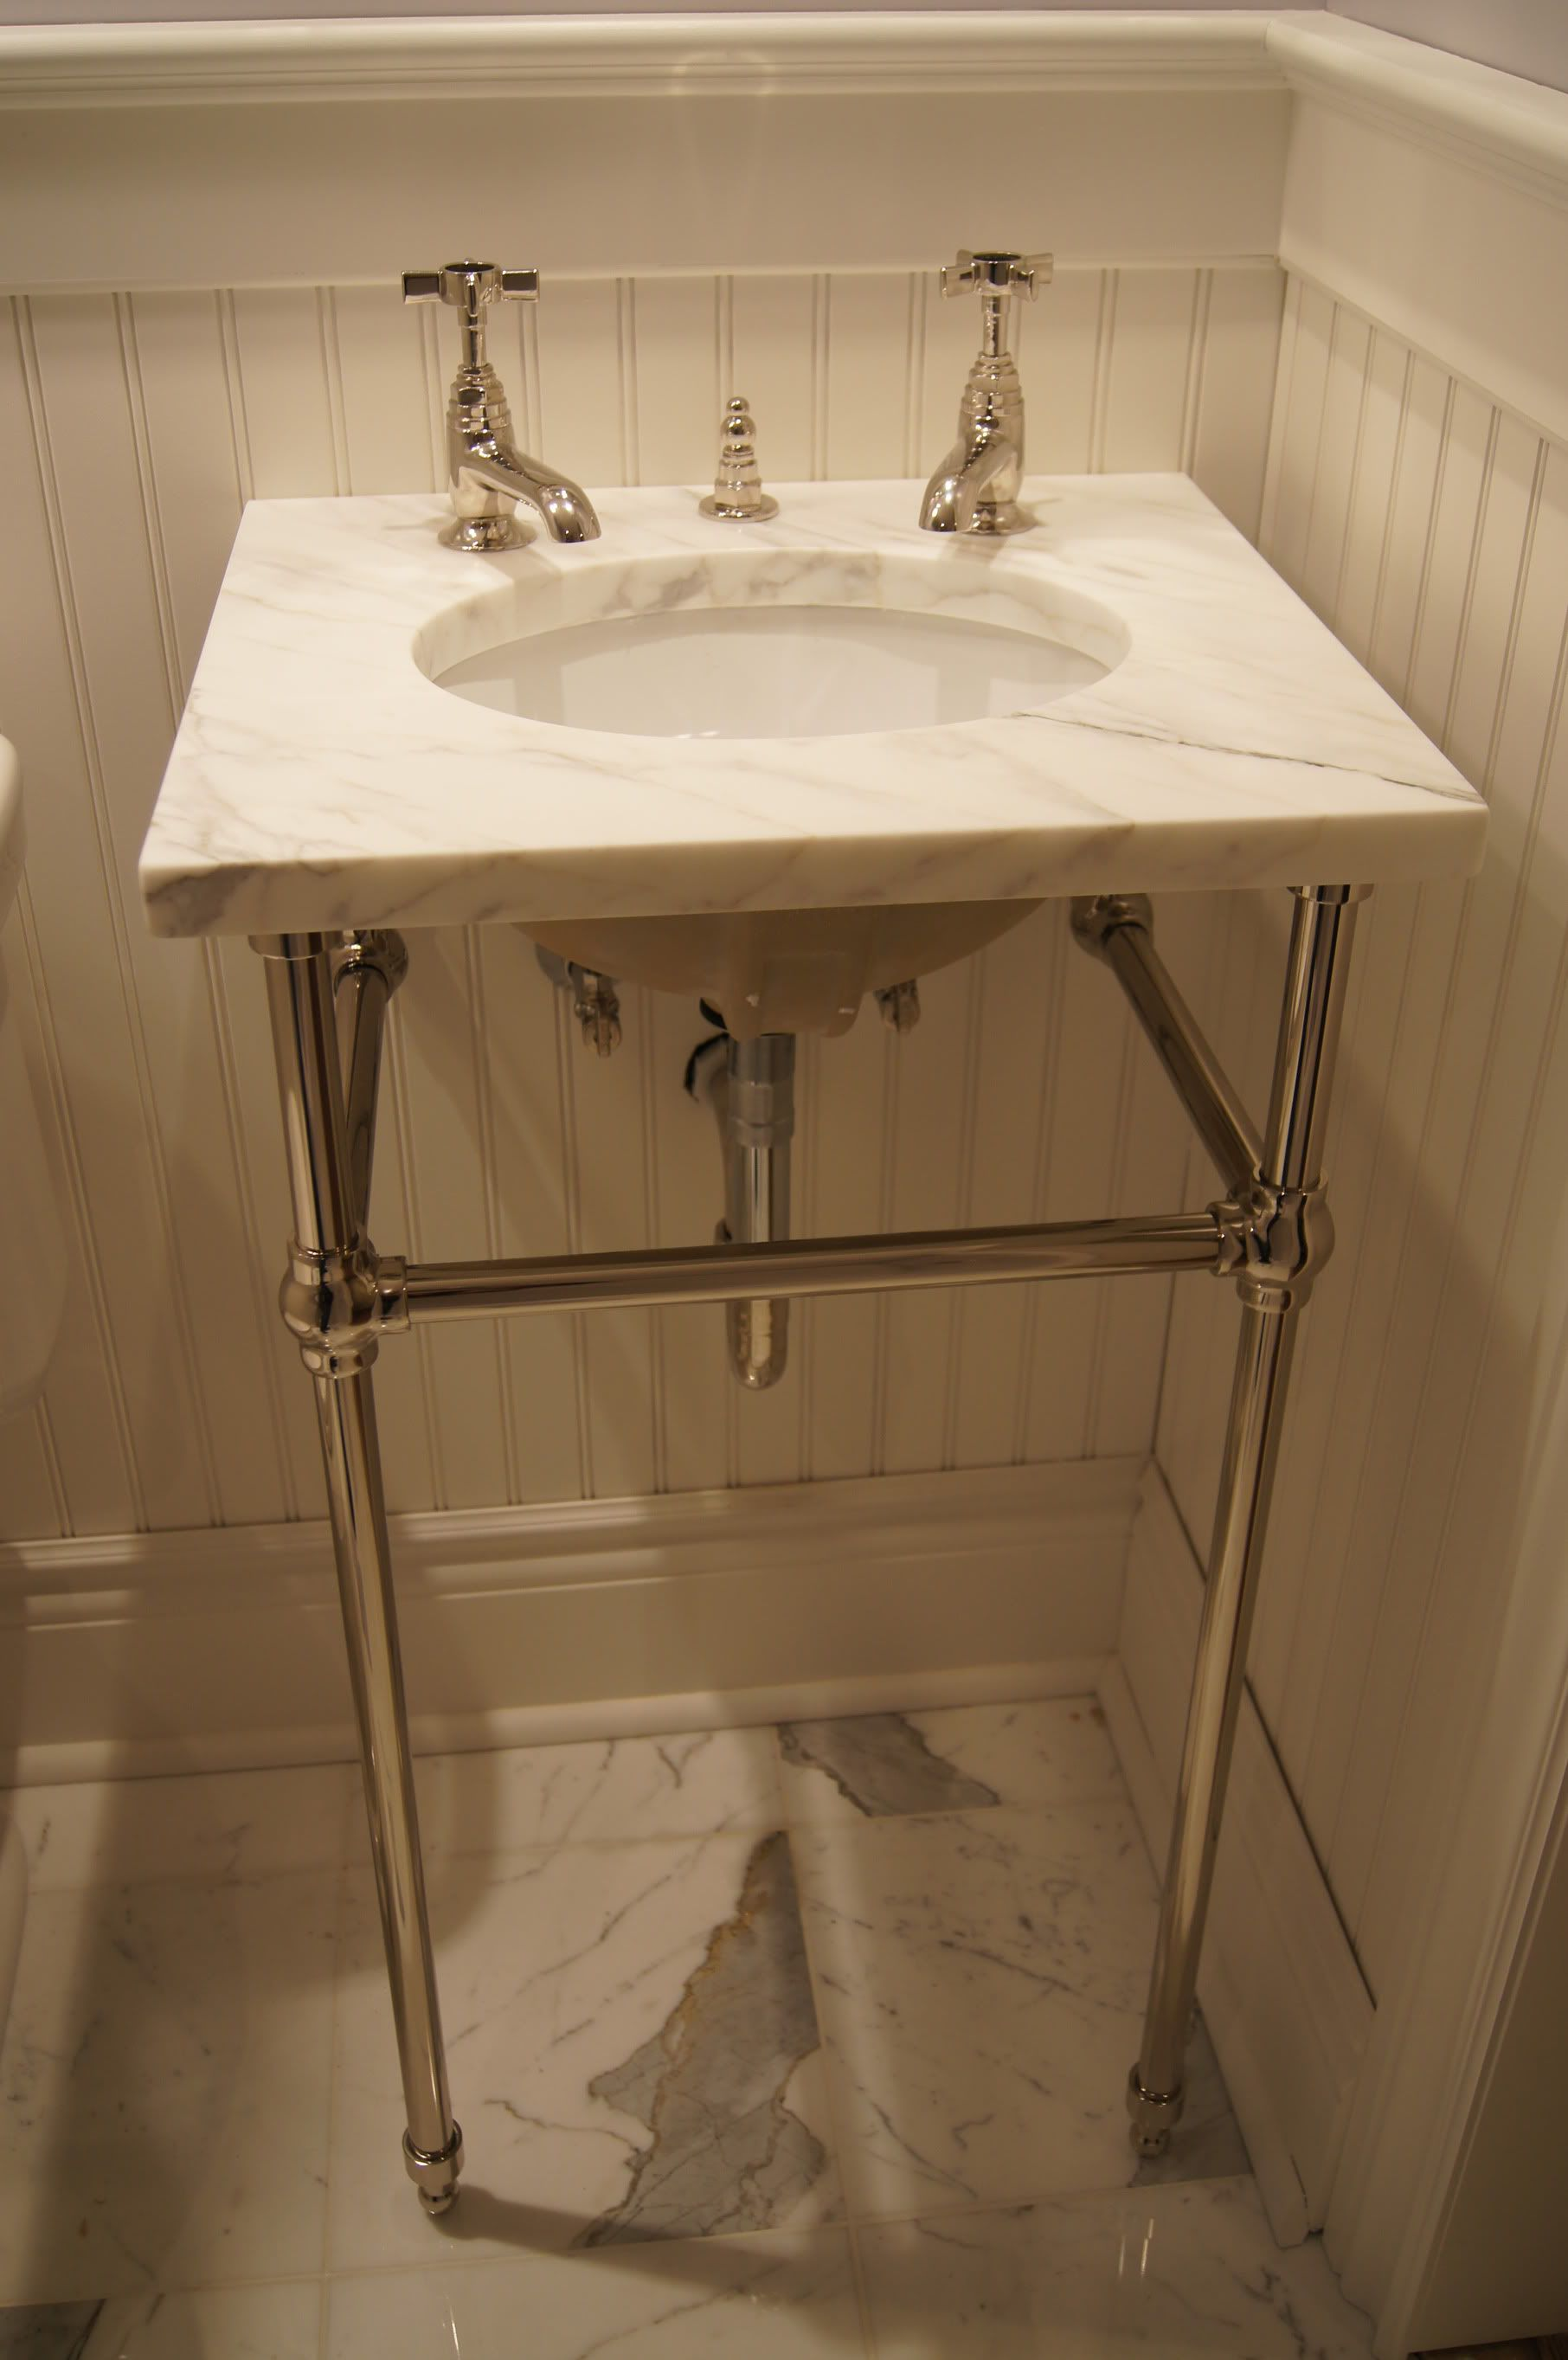 Small Bathroom Undermount Sinks undermount sink with a marble top on console legs | remodeled